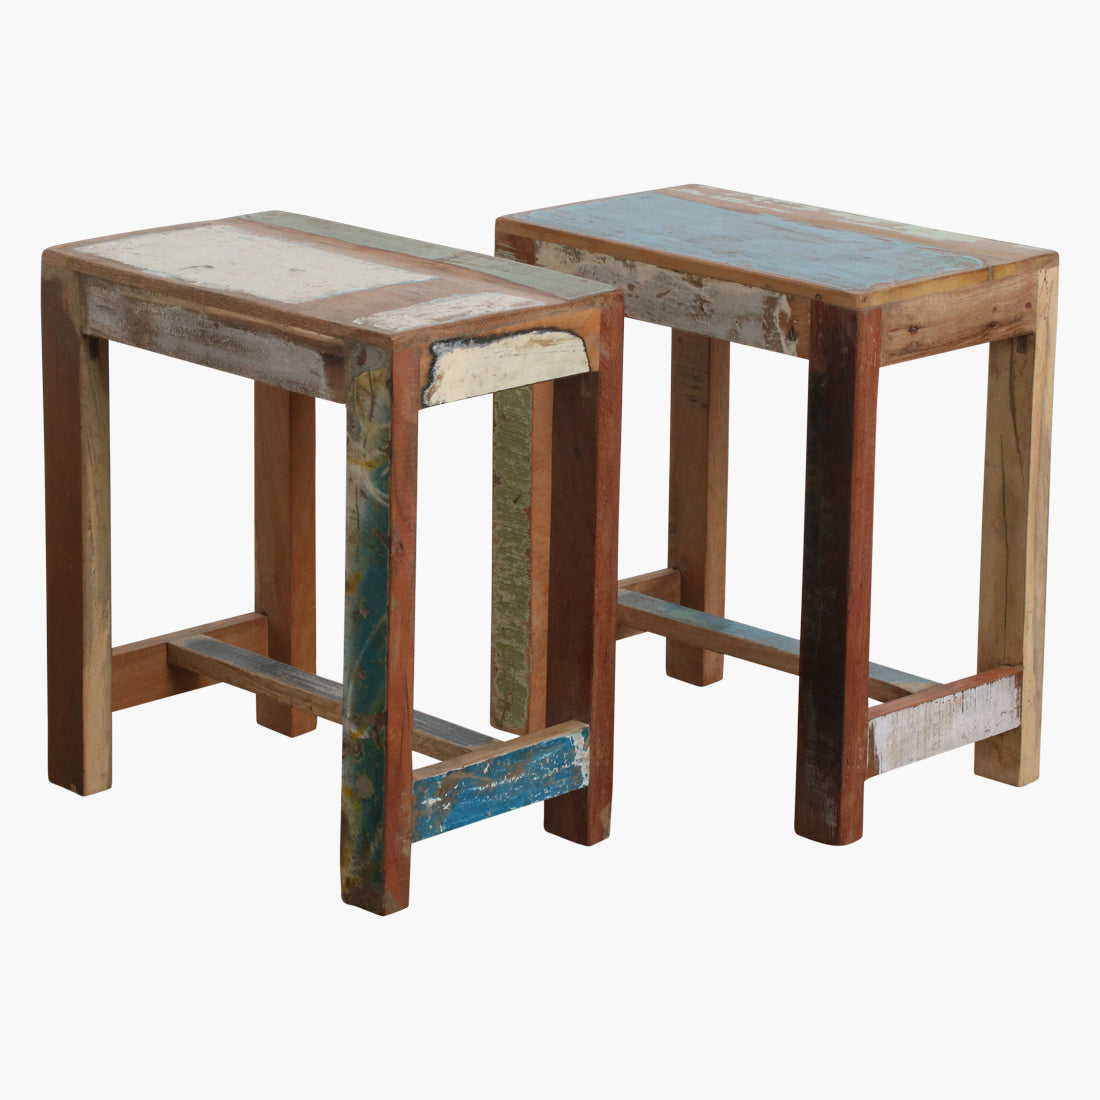 Scrapwood stool rectangular